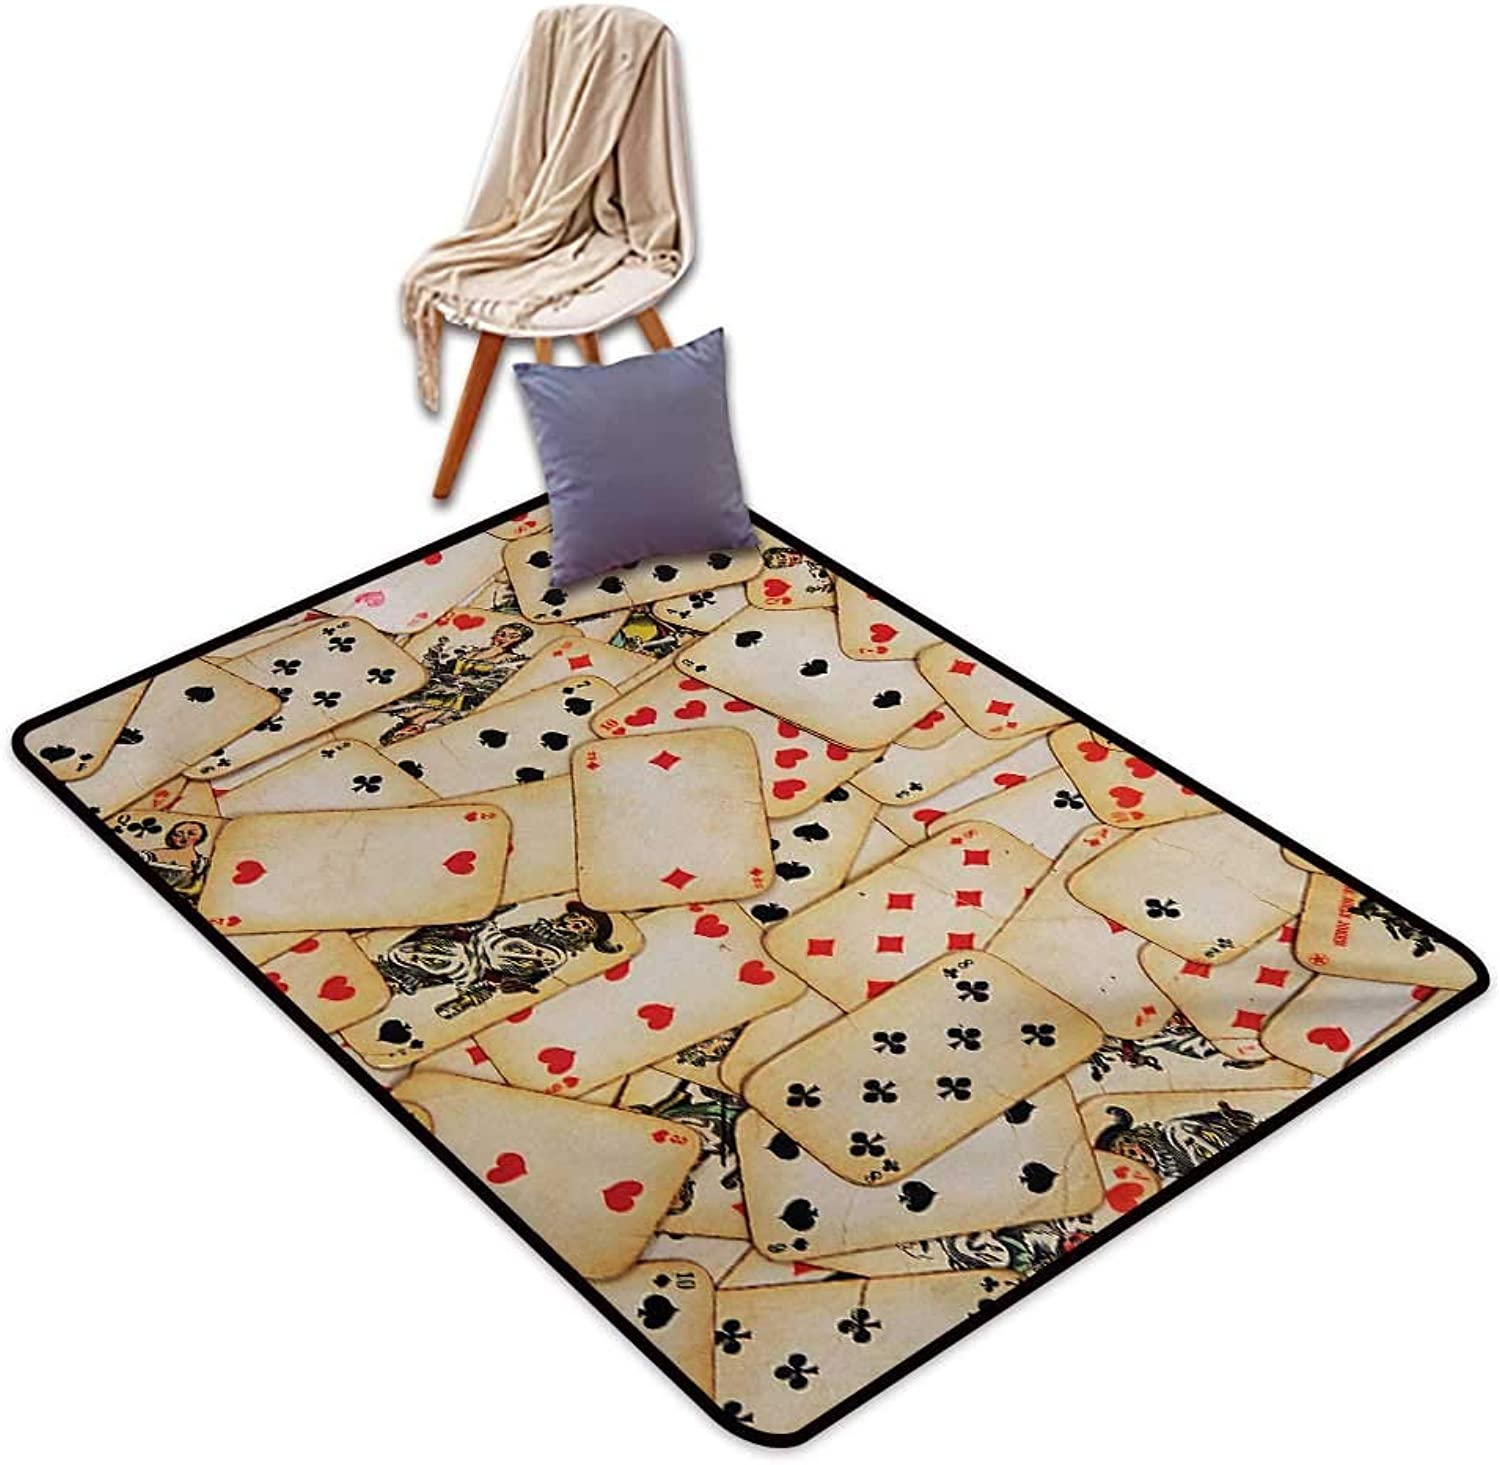 Casino Non-Slip Door mat Old Playing Cards Themed Vintage Classic Style Entertaining Wealth Fortune Water Absorption, Anti-Skid and Oil Proof 48  Wx71 L Beige Red Black